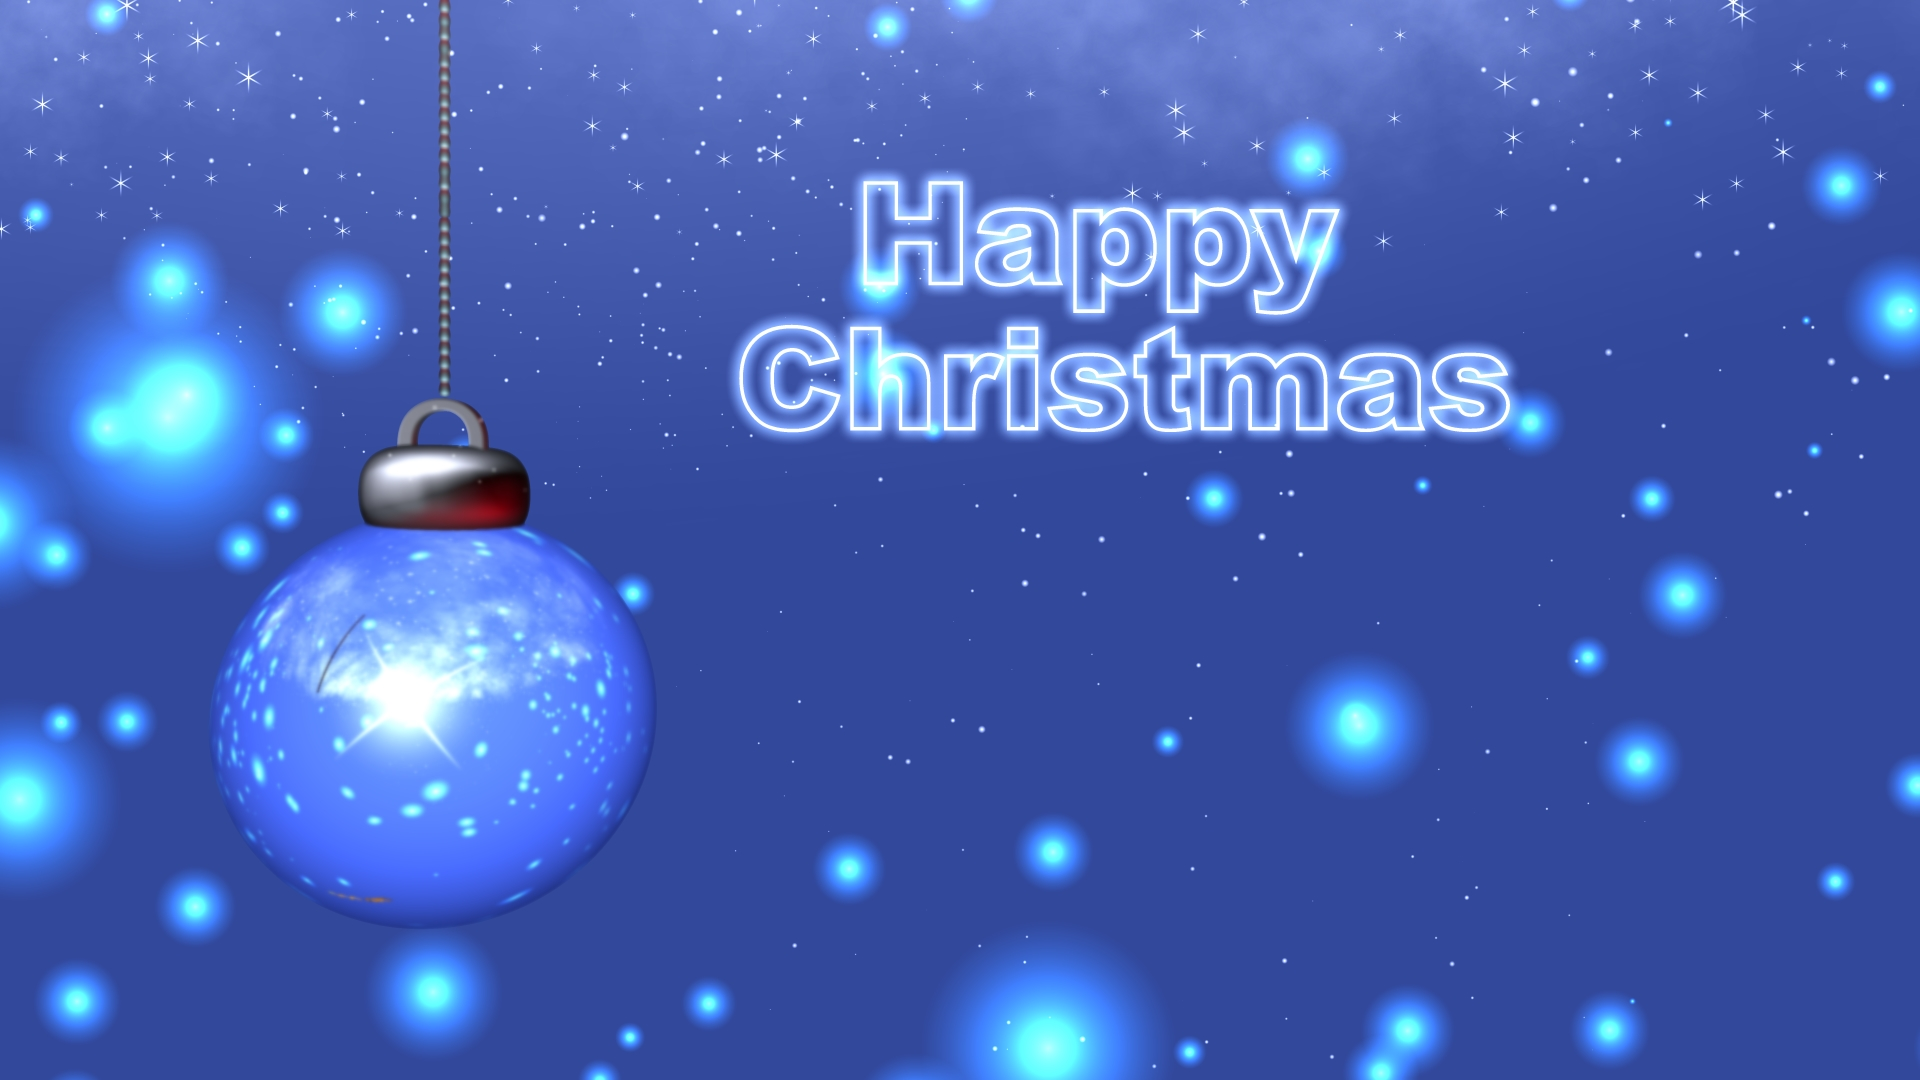 Free Stock Photo 11745 Christmas Bt Render001 Freeimageslive